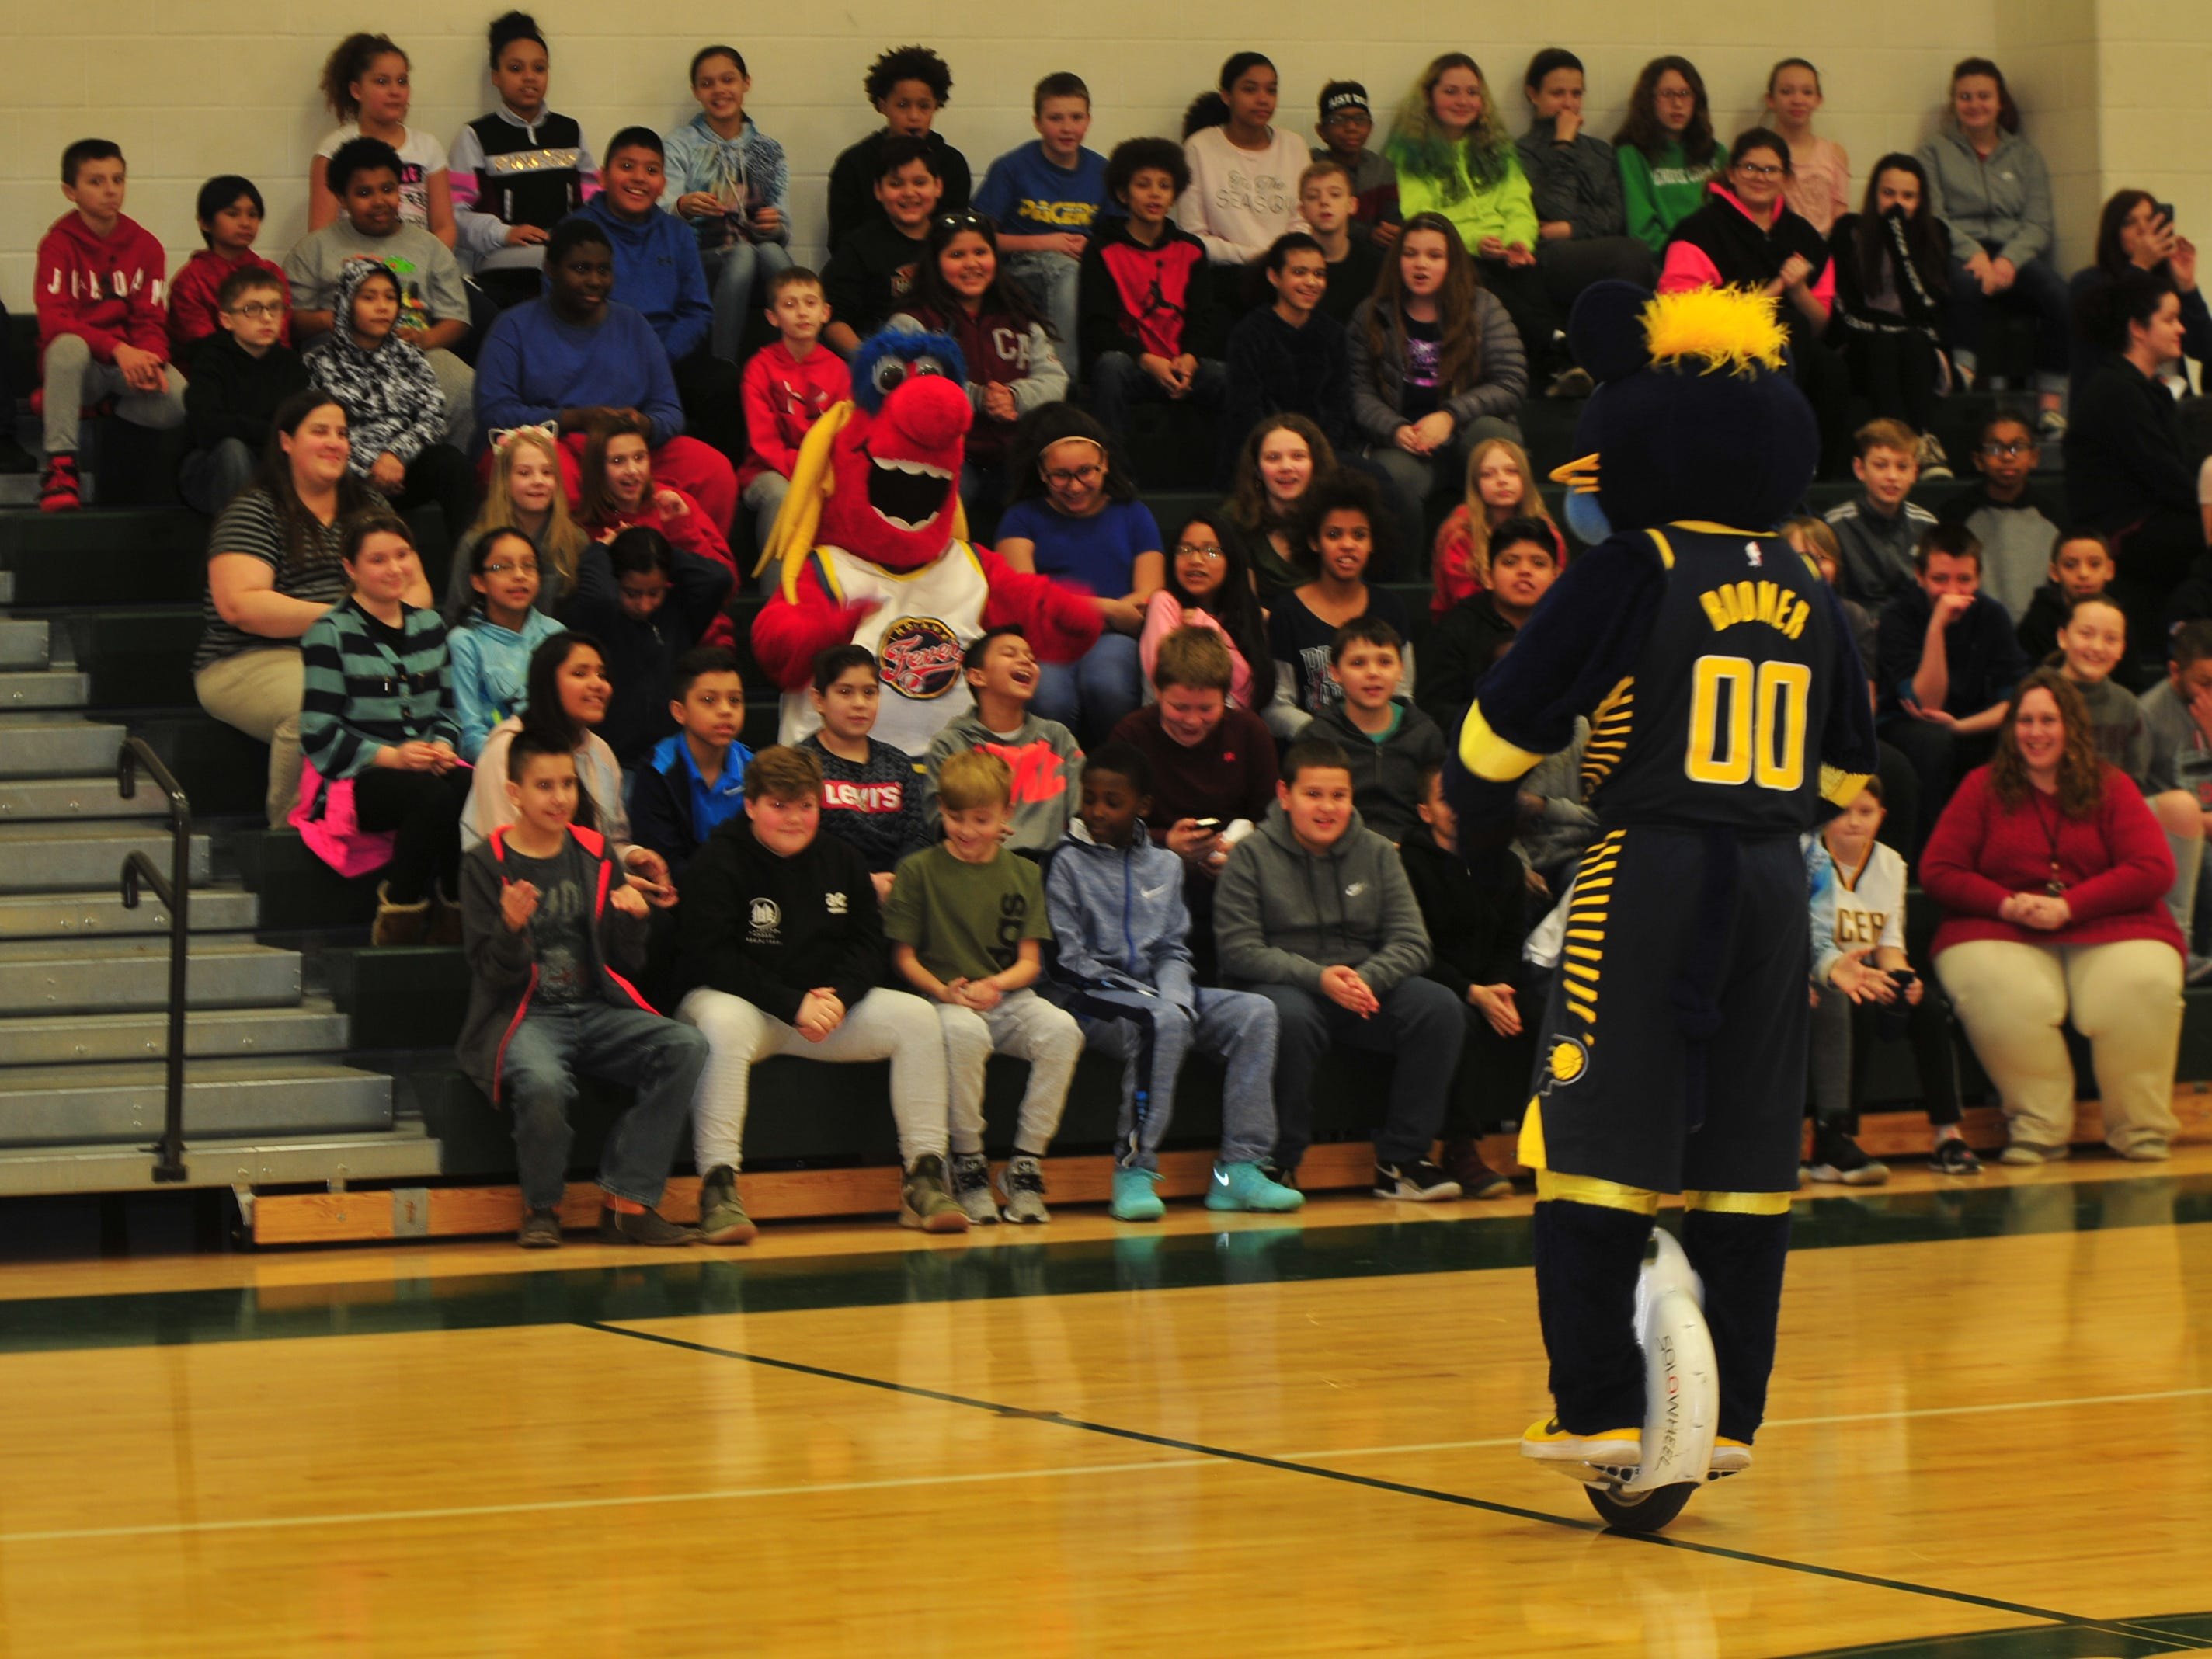 Boomer, mascot for the NBA's Indiana Pacers, starts his program Wednesday for Dennis Intermediate School students.